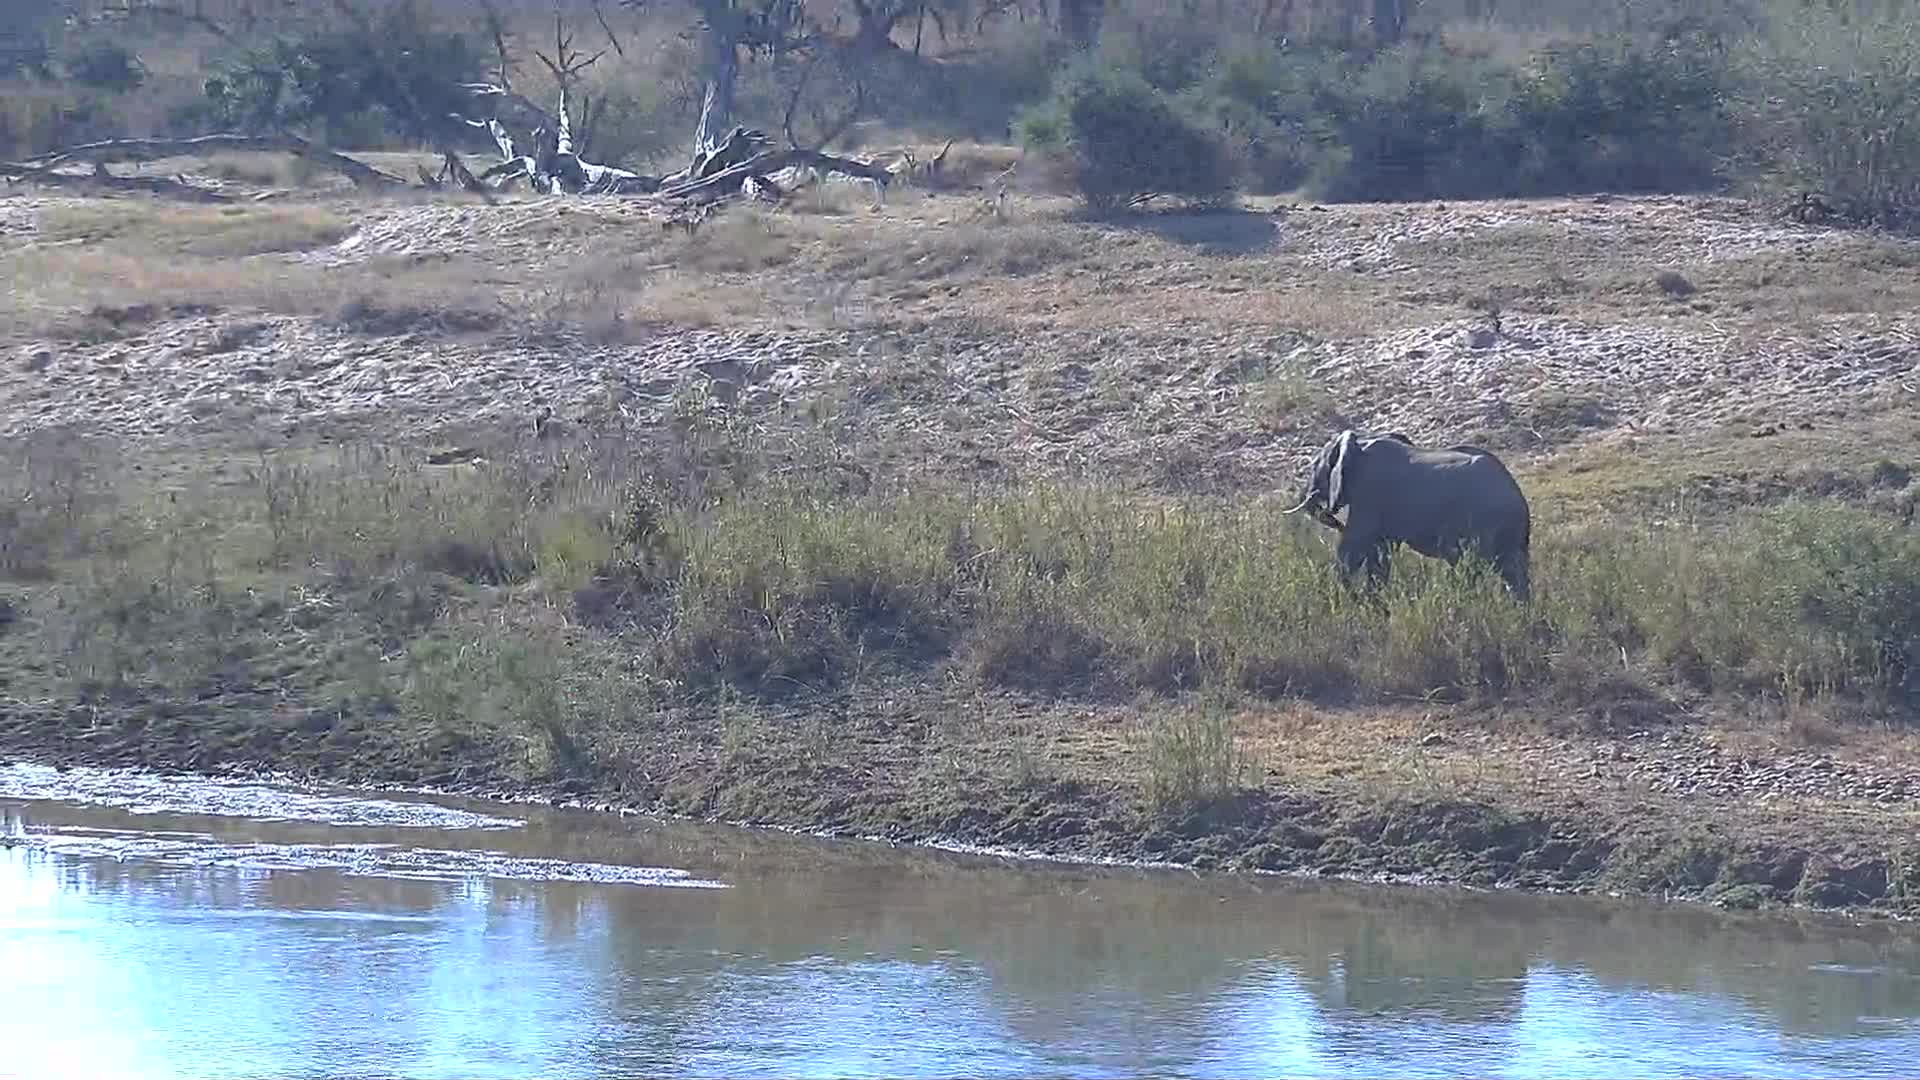 VIDEO:  Elephant walking on the river bank